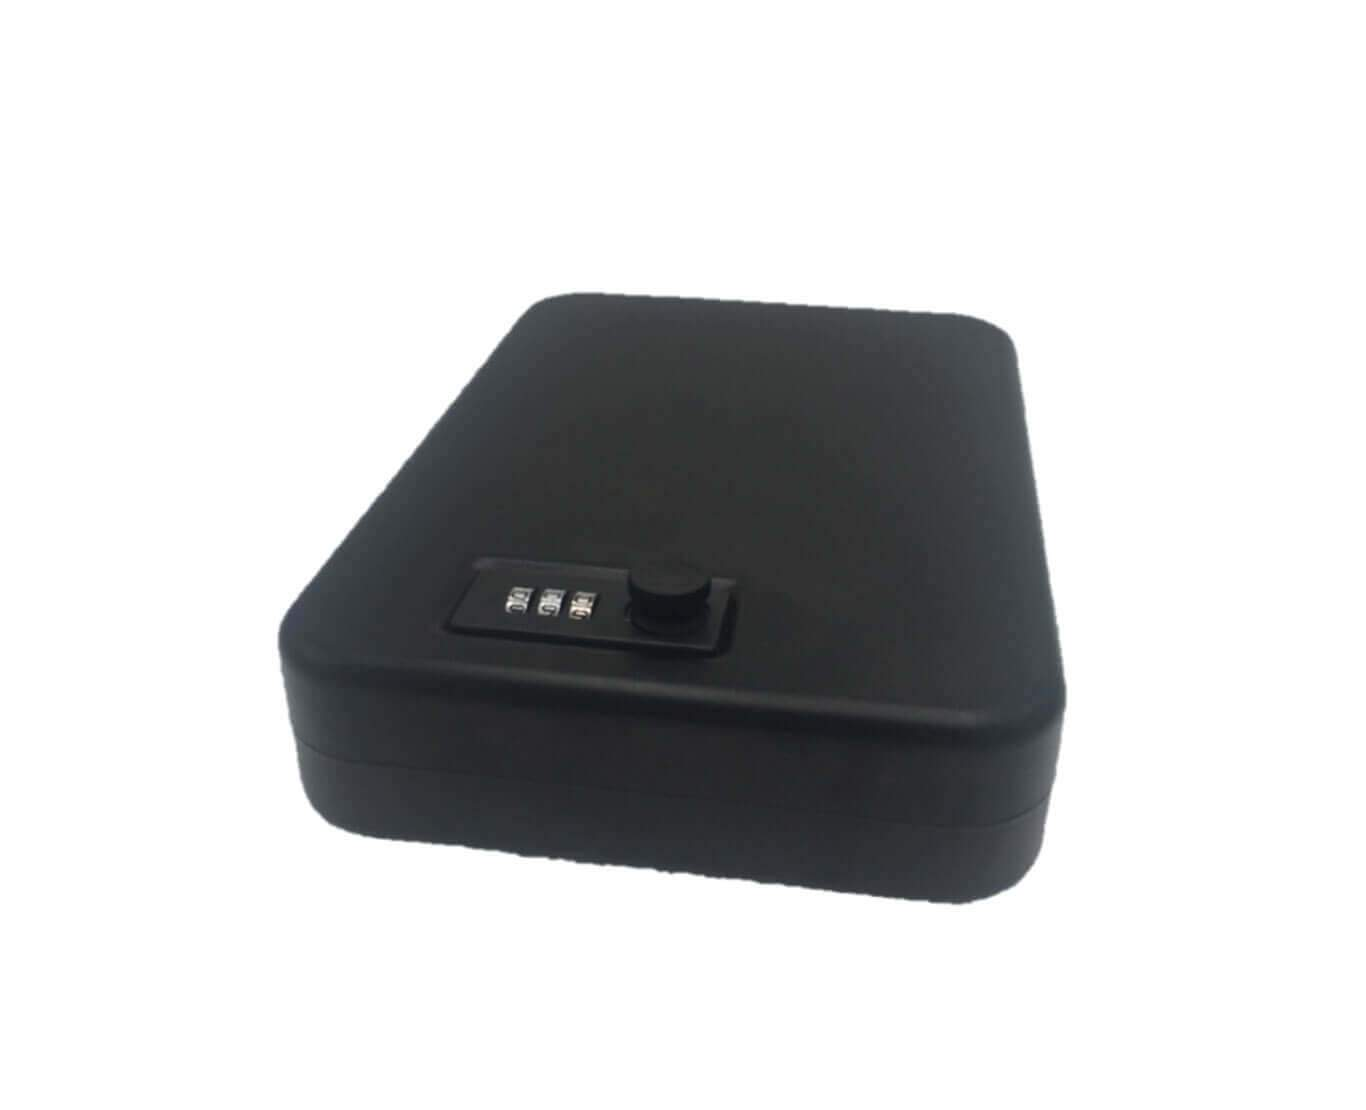 Security Safes - FireKing ML1007 Portable Safe